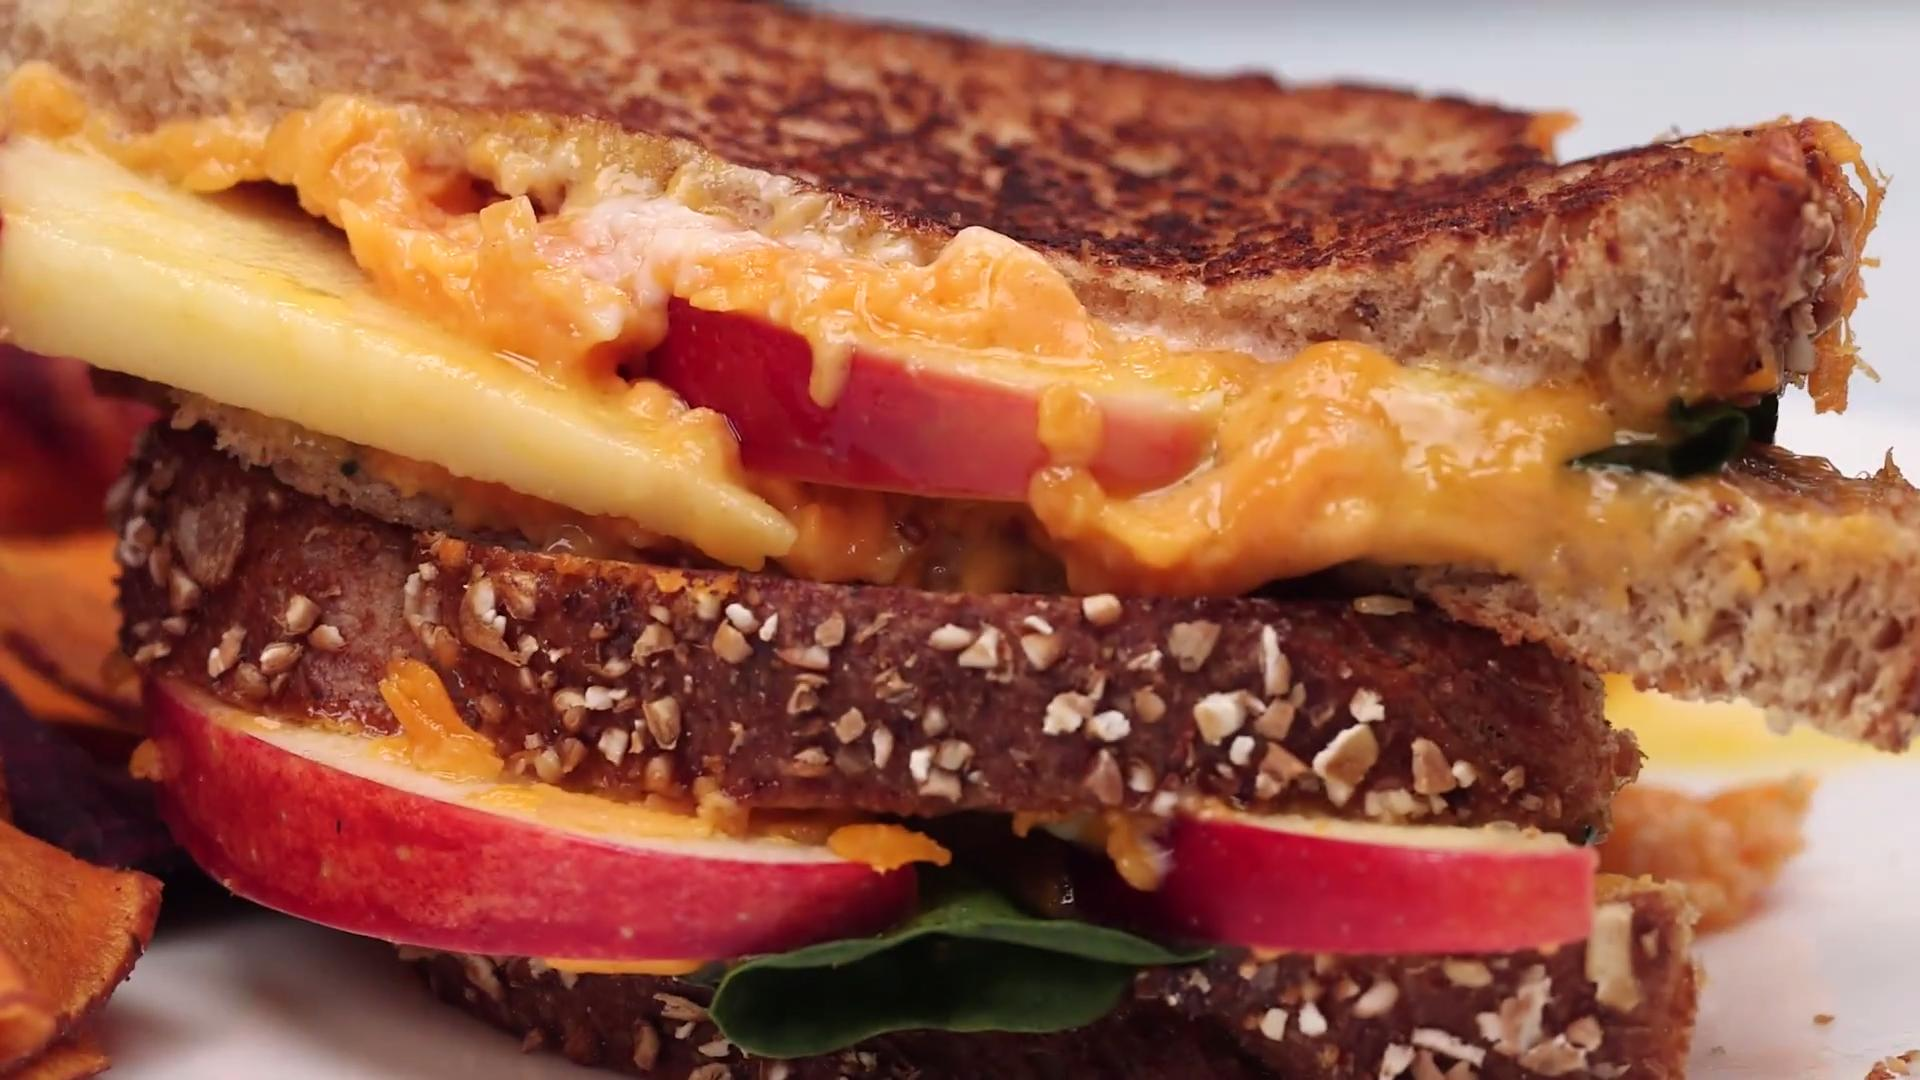 Grilled Cheese Sandwich With Apples